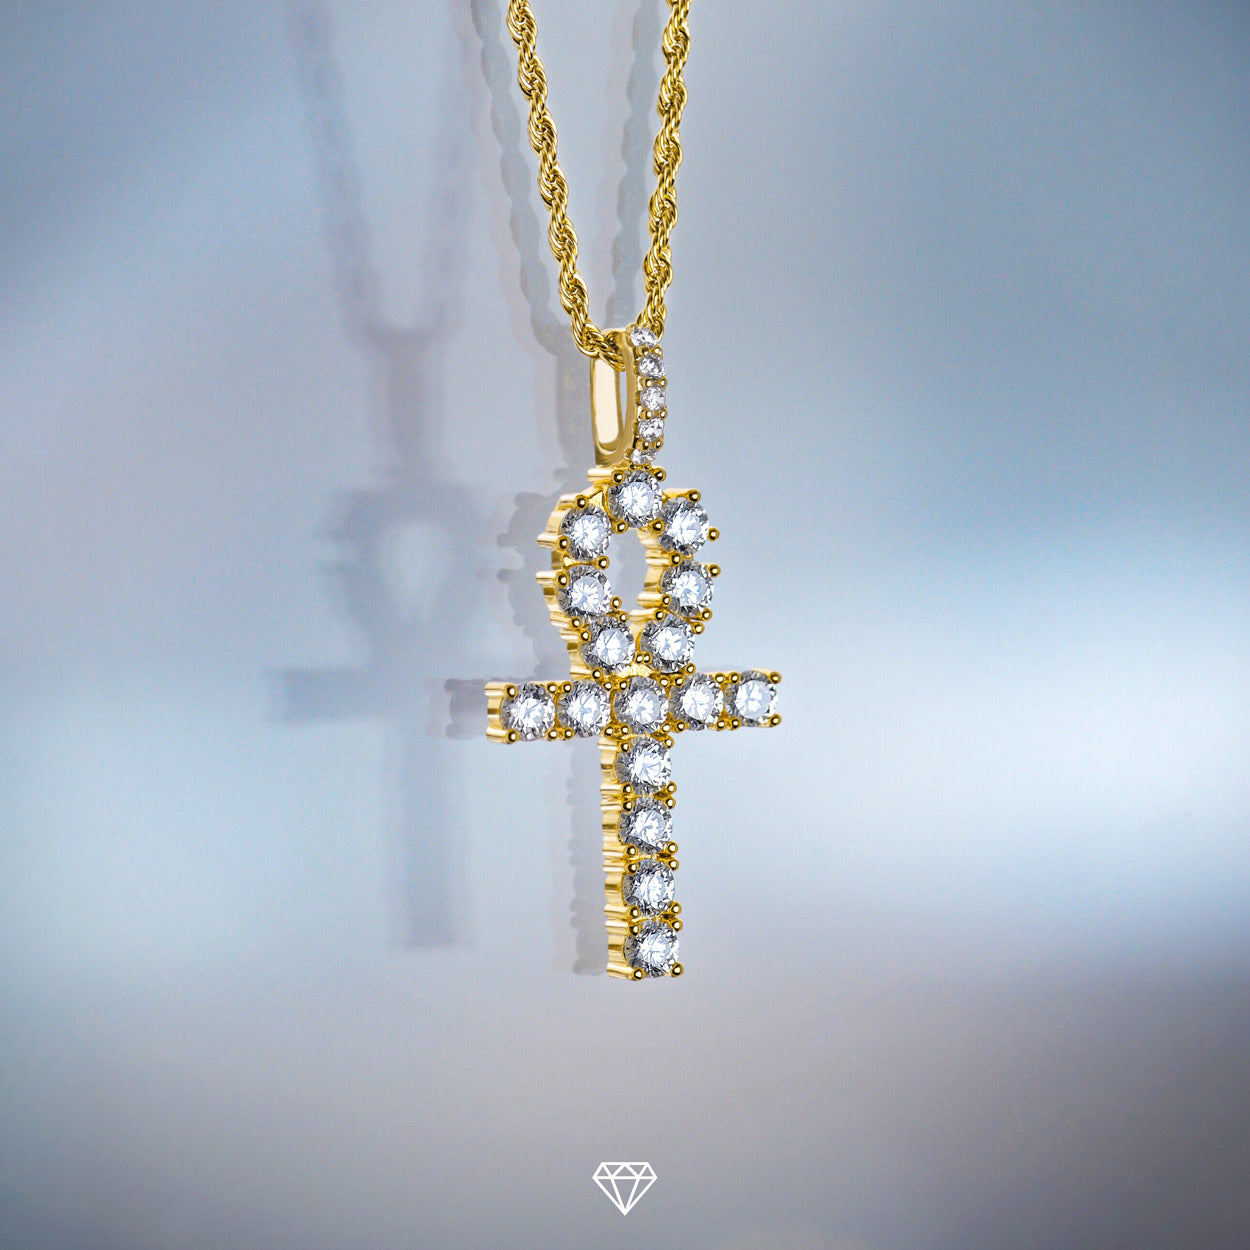 Gold City Diamond Ankh Cross Pendant